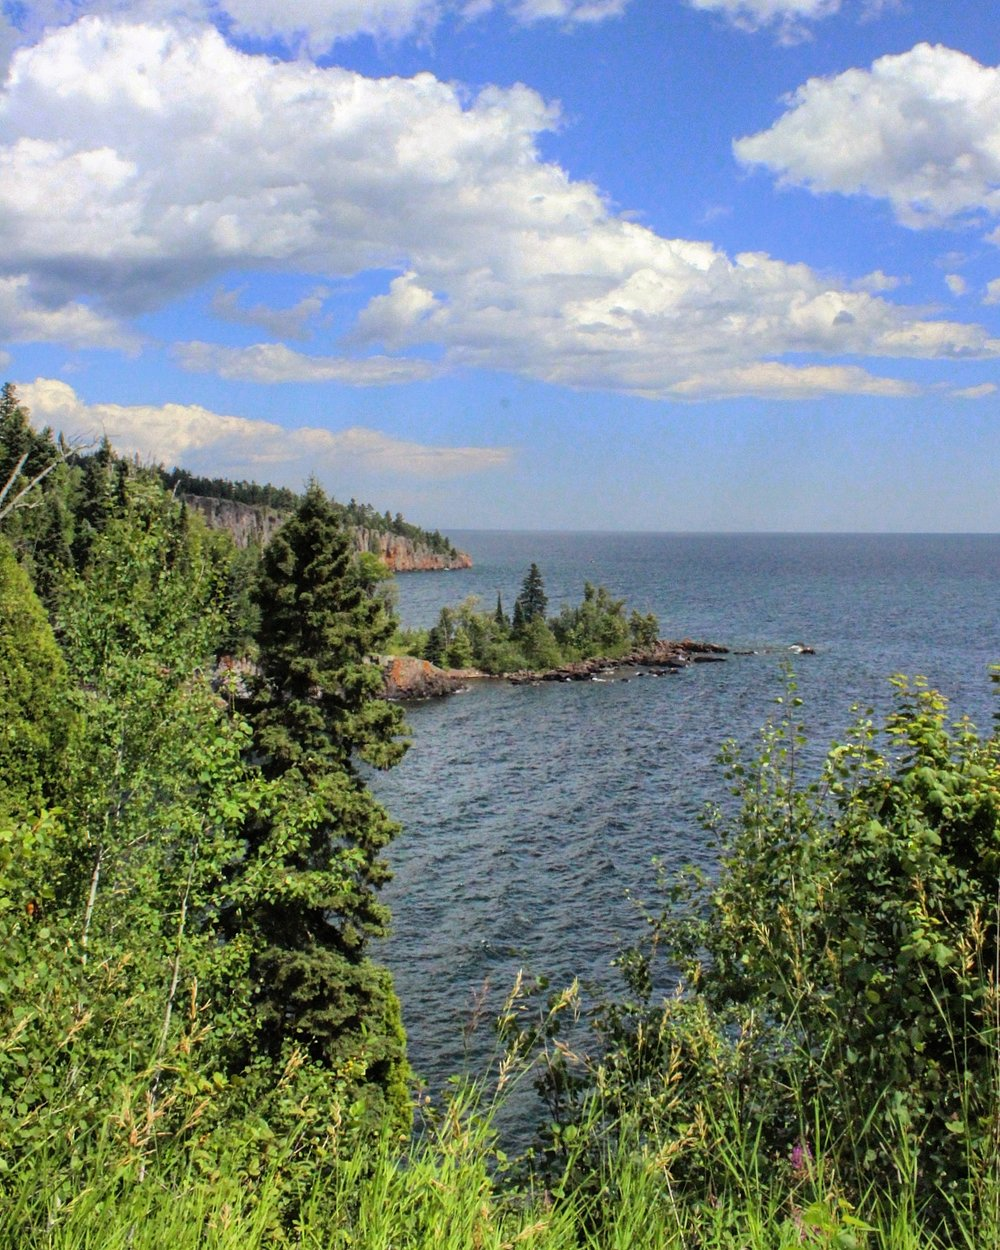 View of Tettegouche State Park's Shovel Point